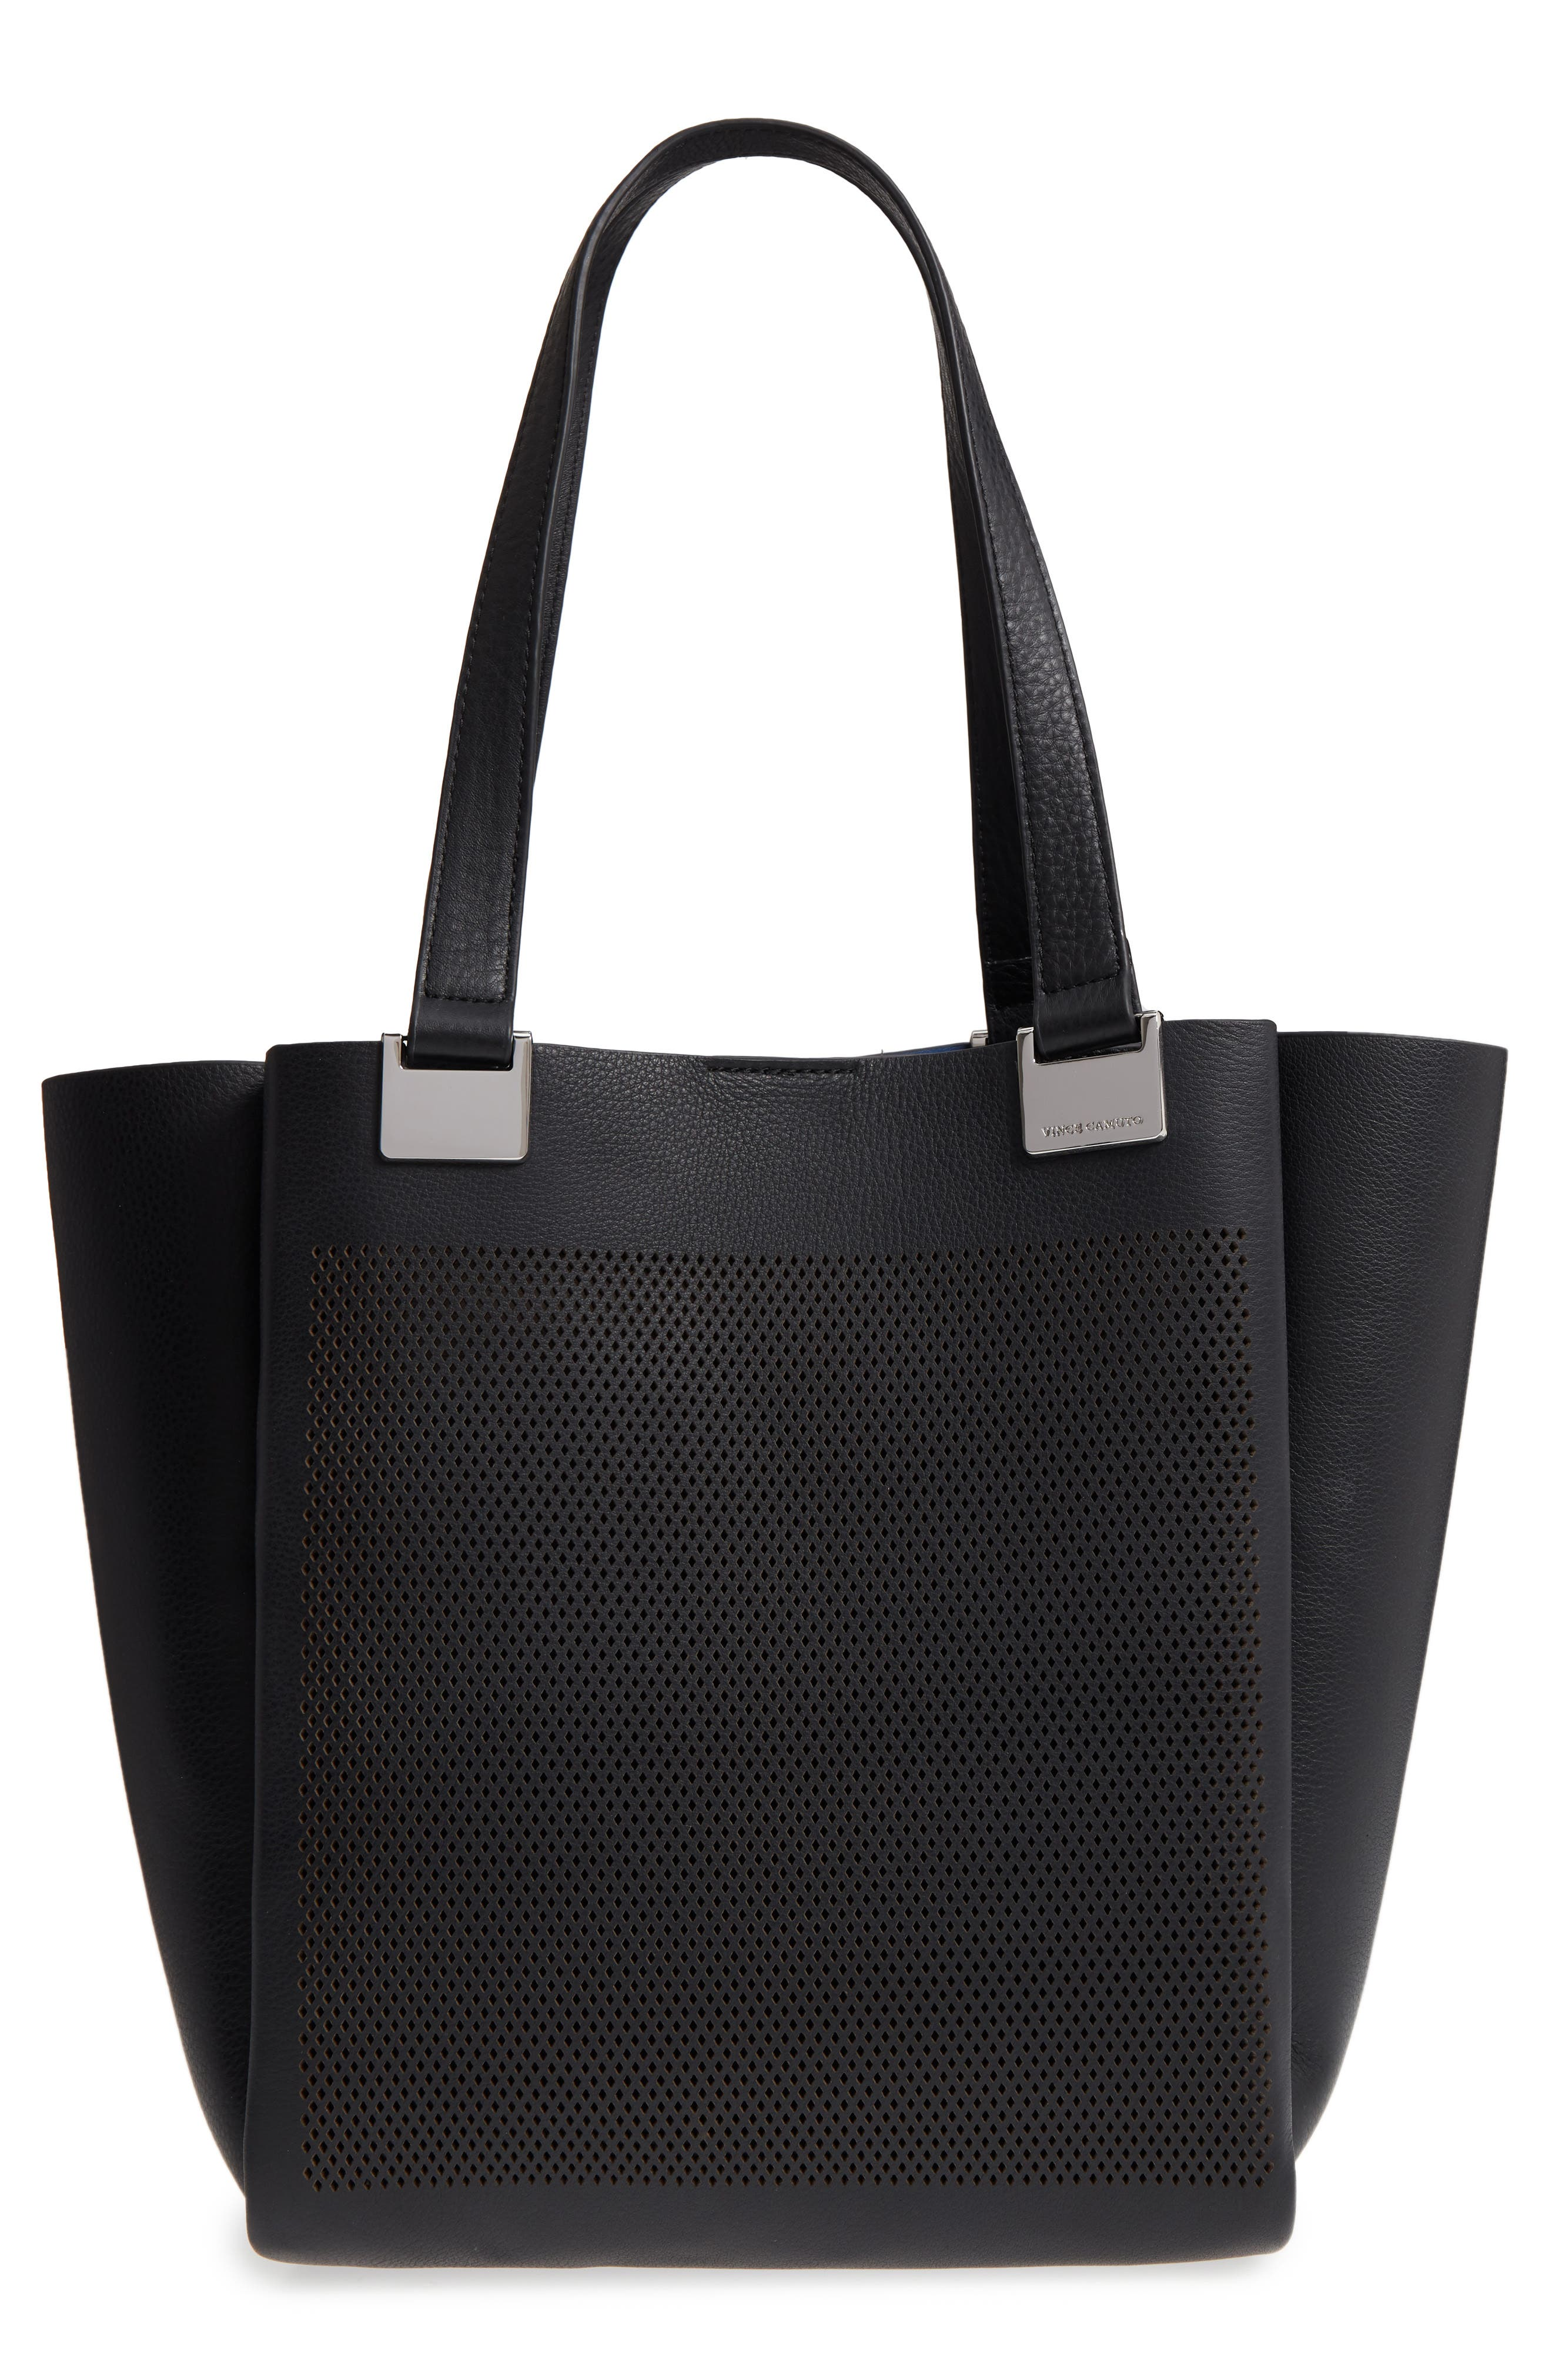 Beatt Perforated Leather Tote,                             Main thumbnail 1, color,                             Nero/ True Blue